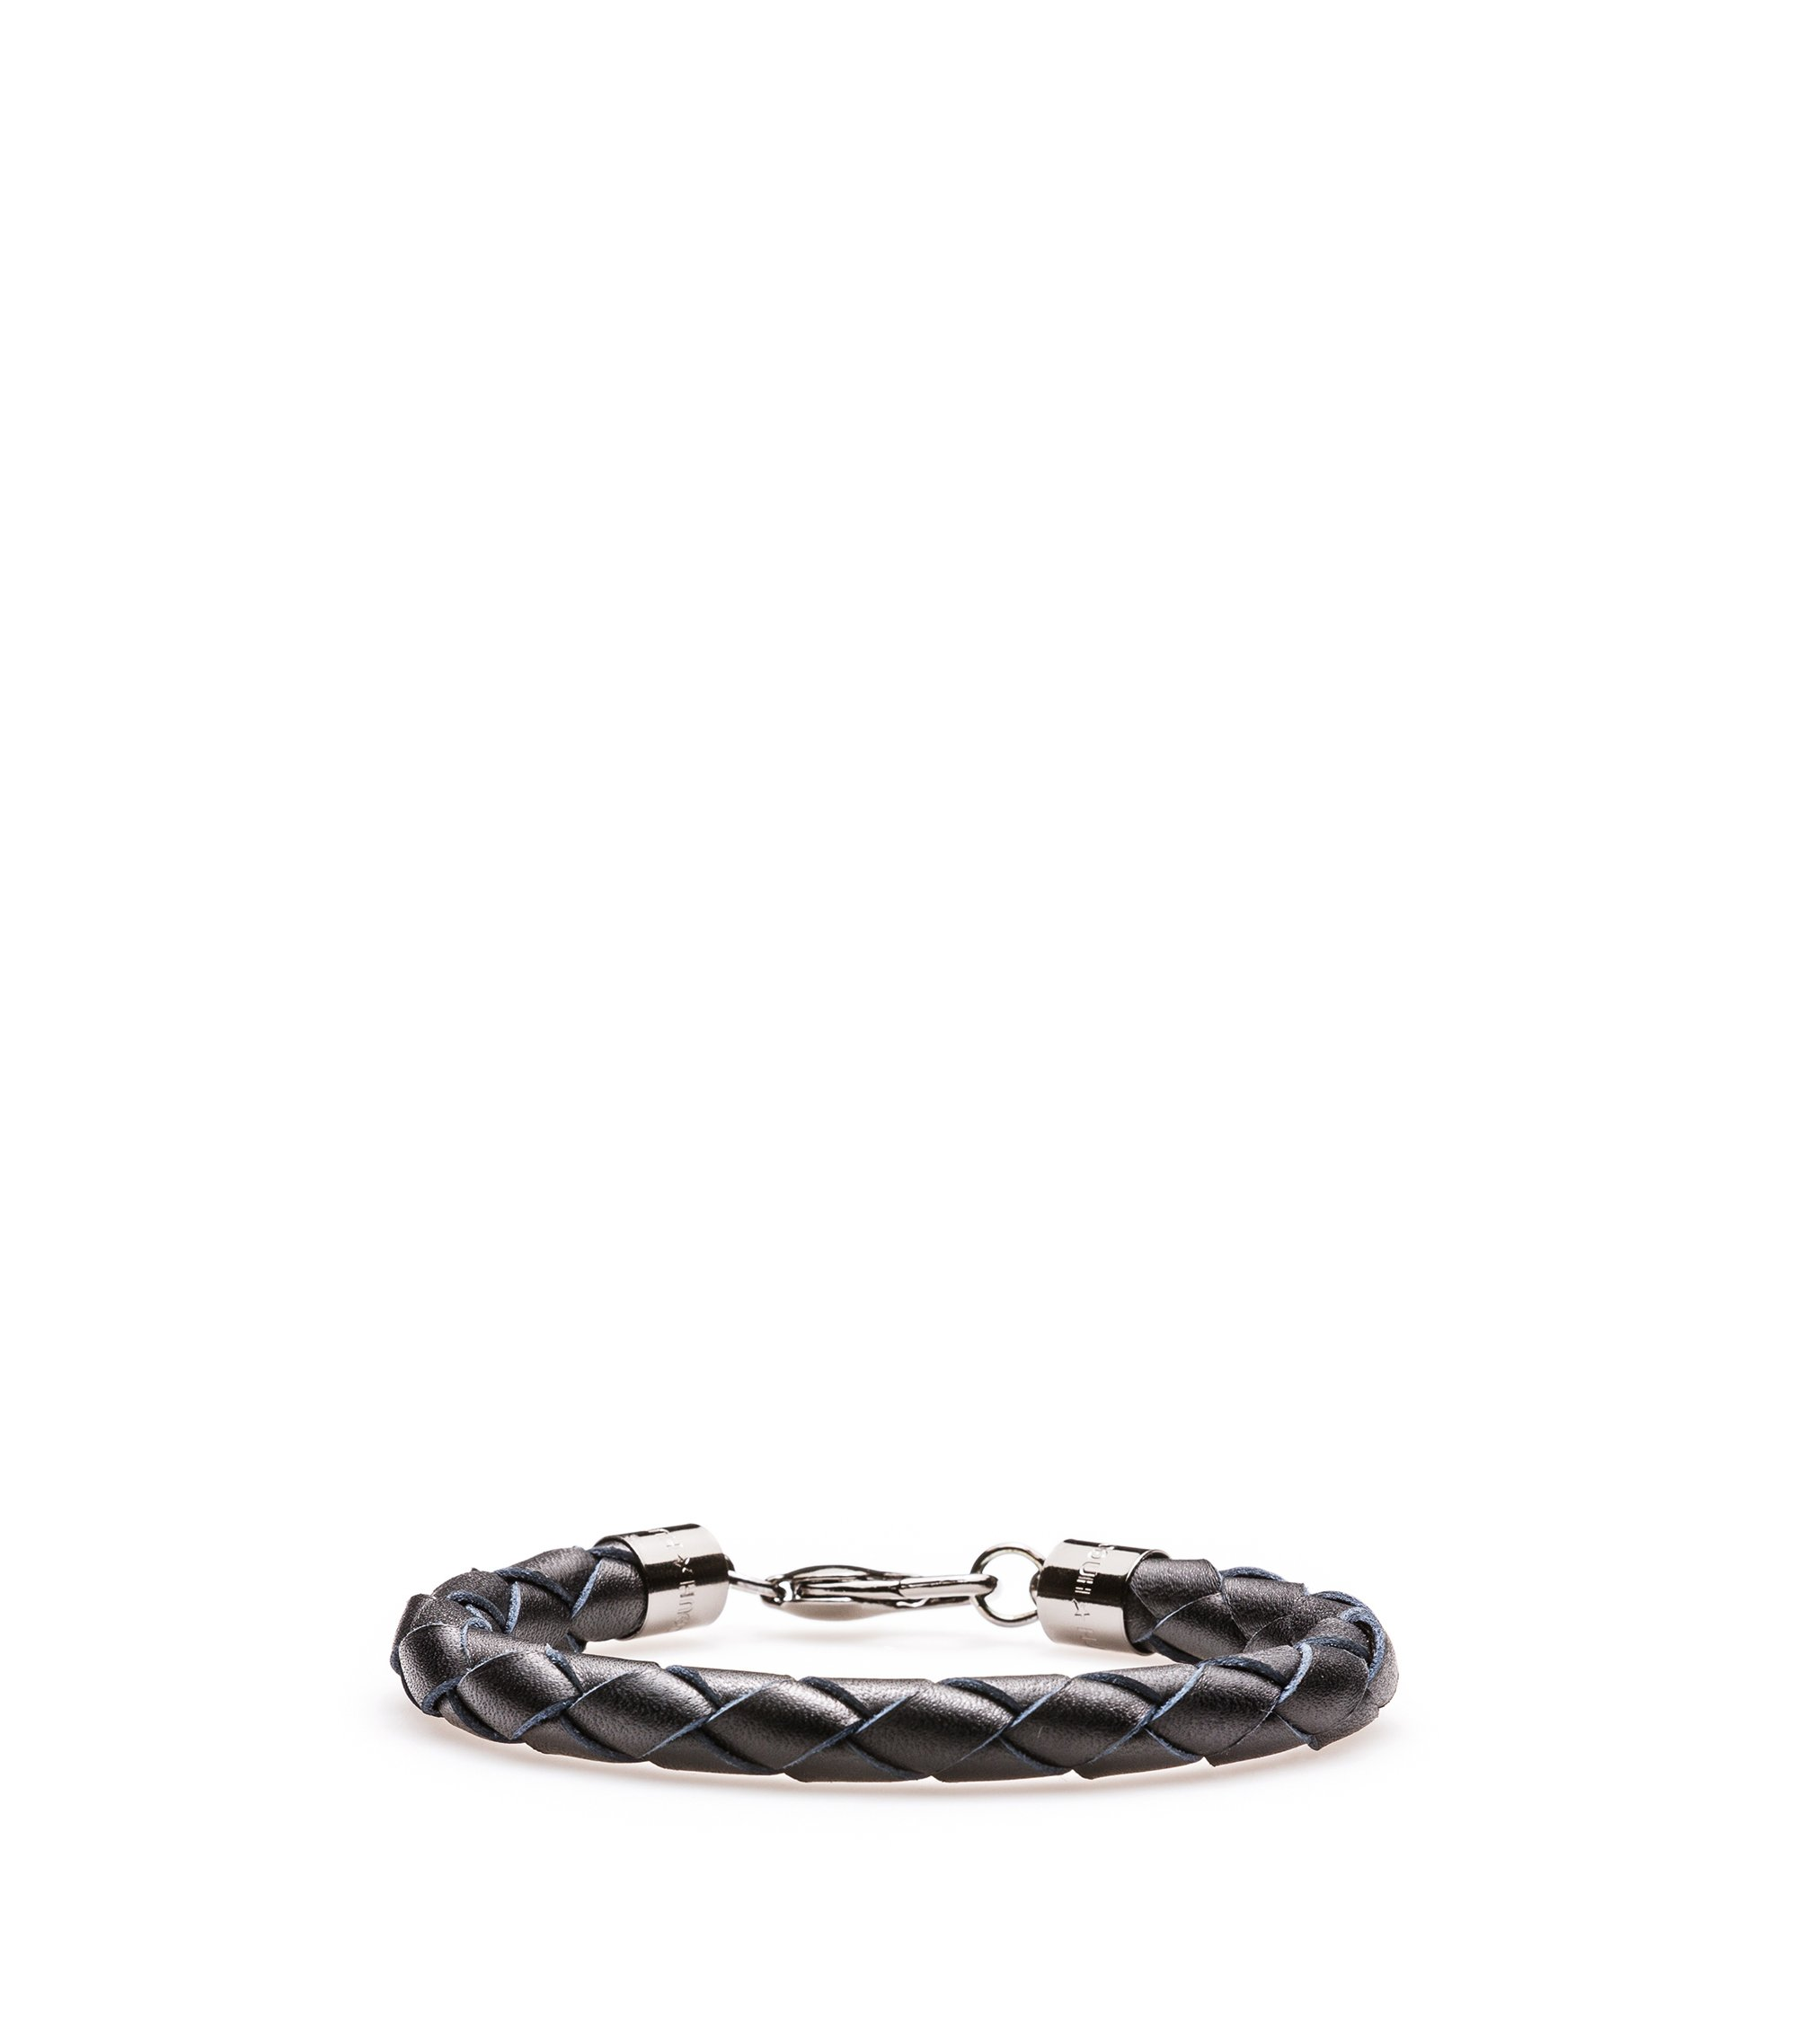 Woven Leather Bracelet | E-Cuir, Black